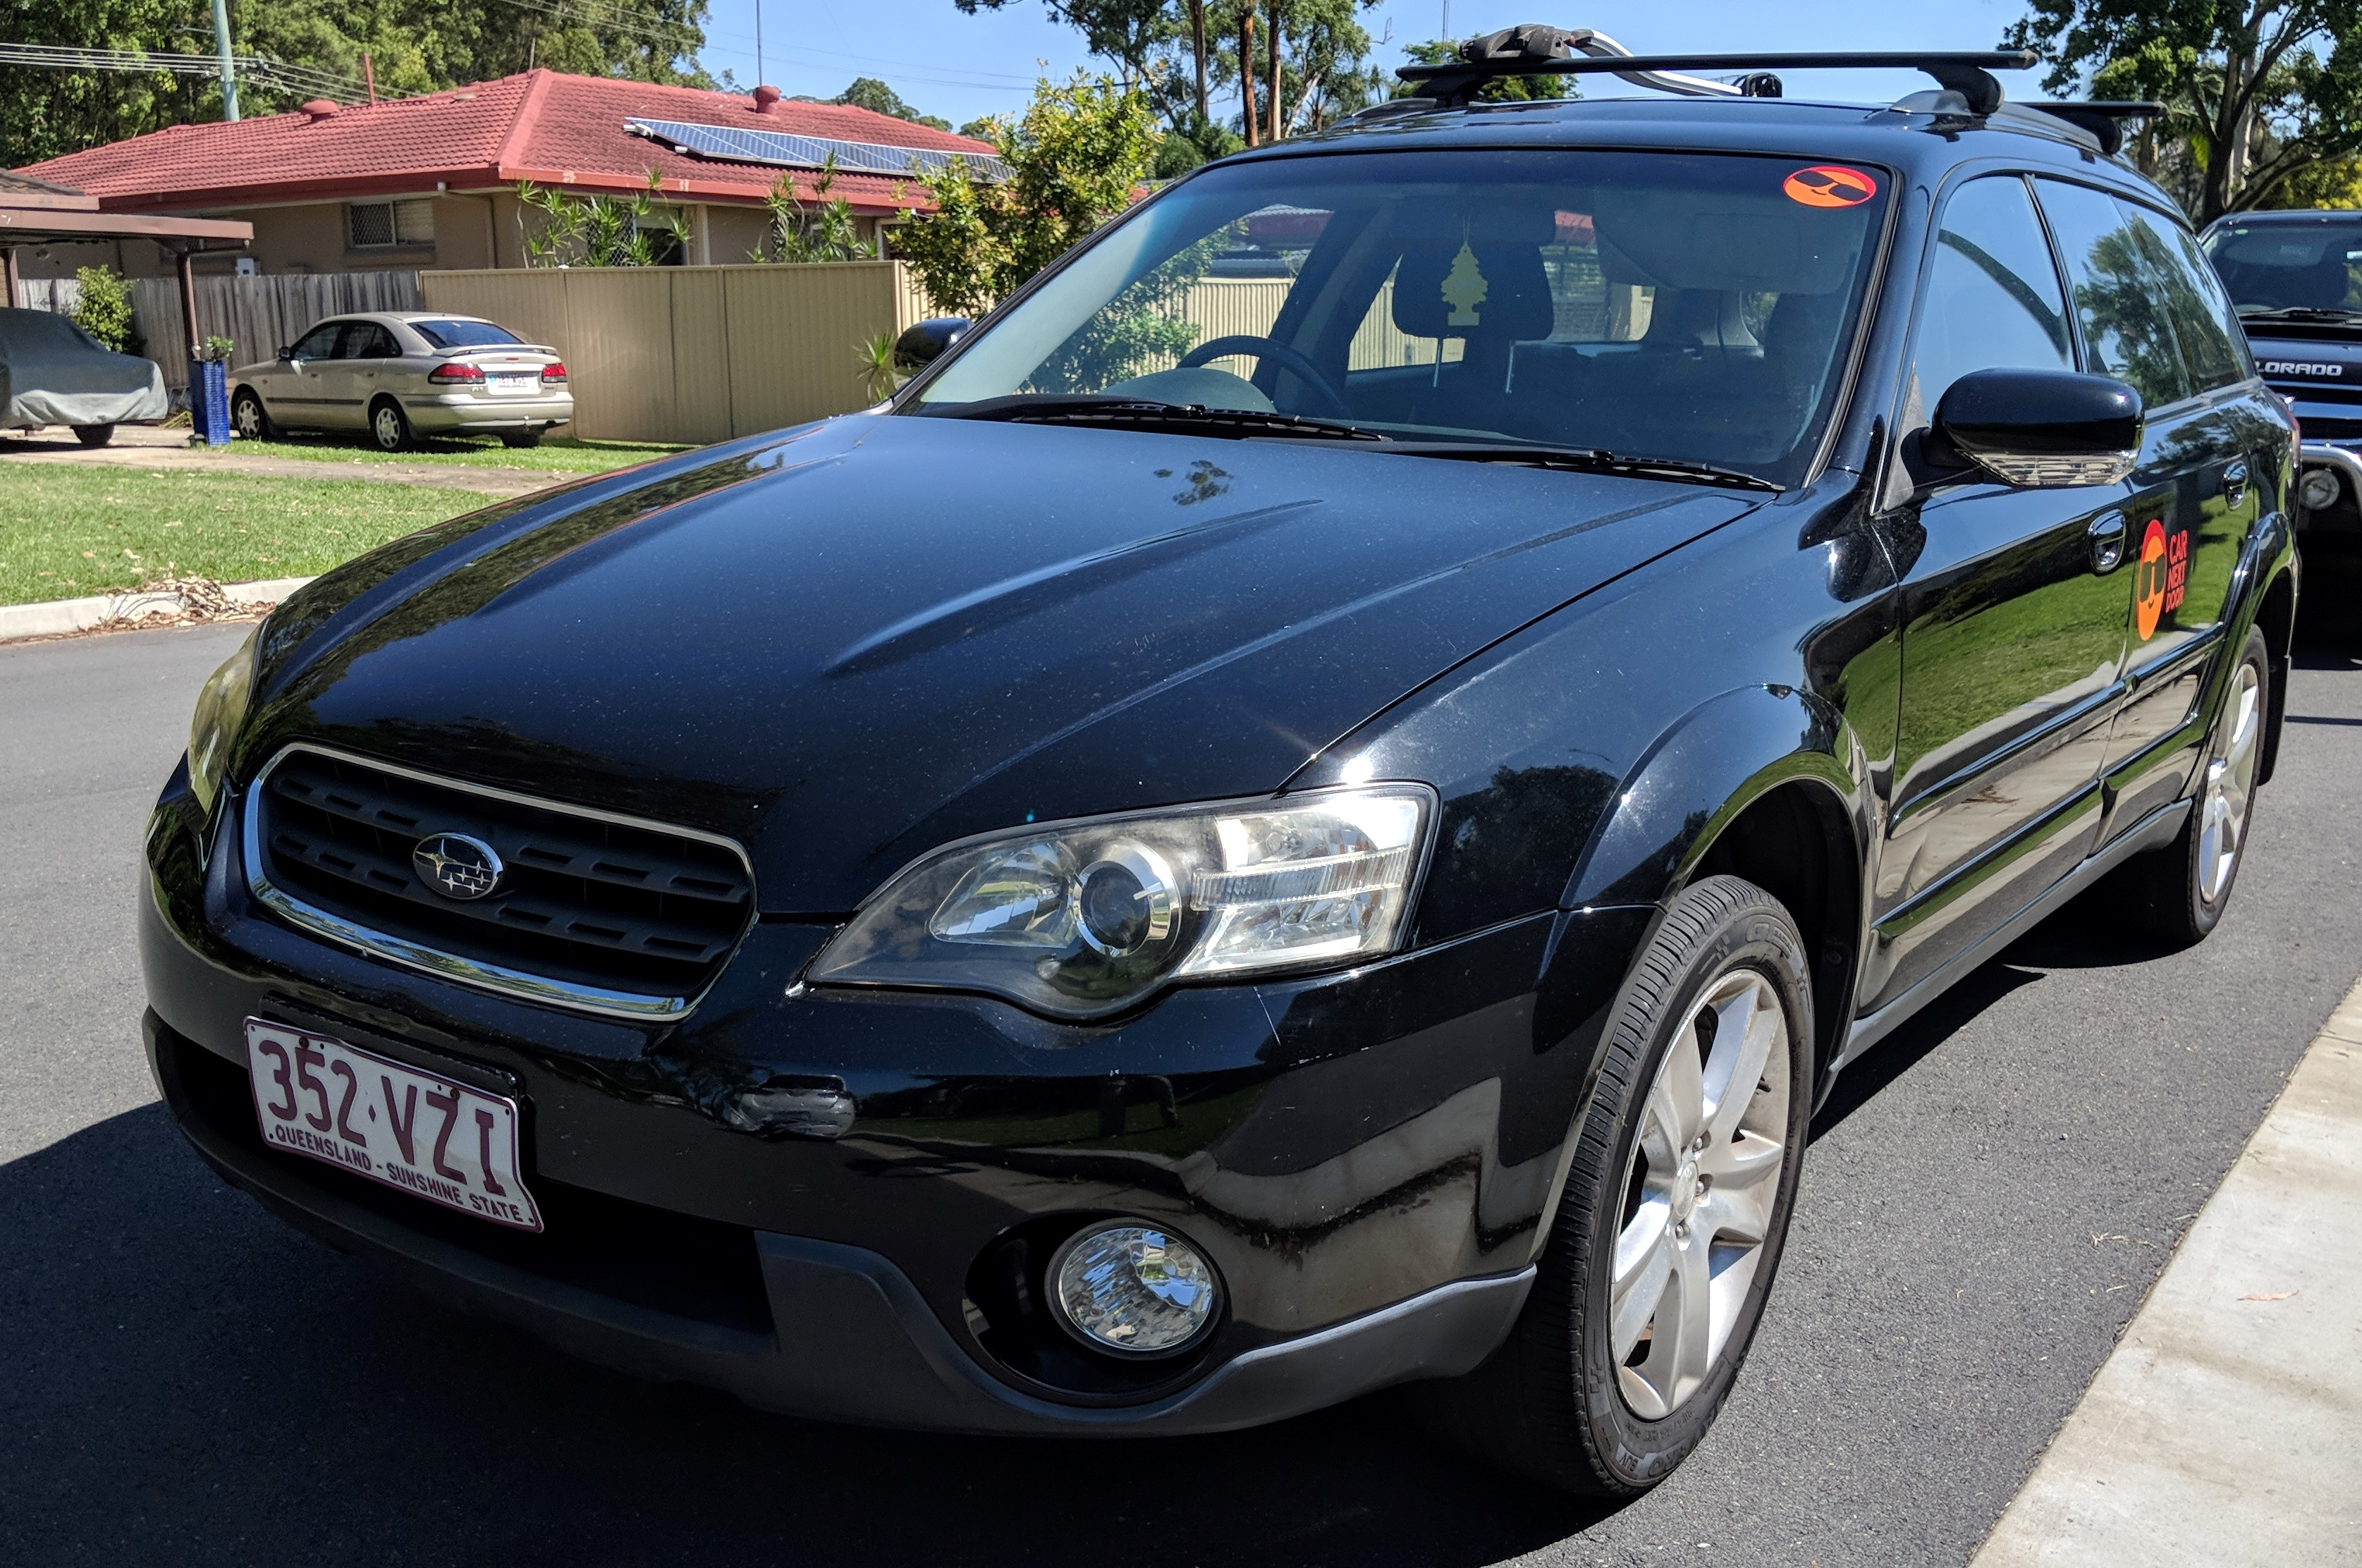 Picture of Lee-Ann's 2006 Subaru Outback